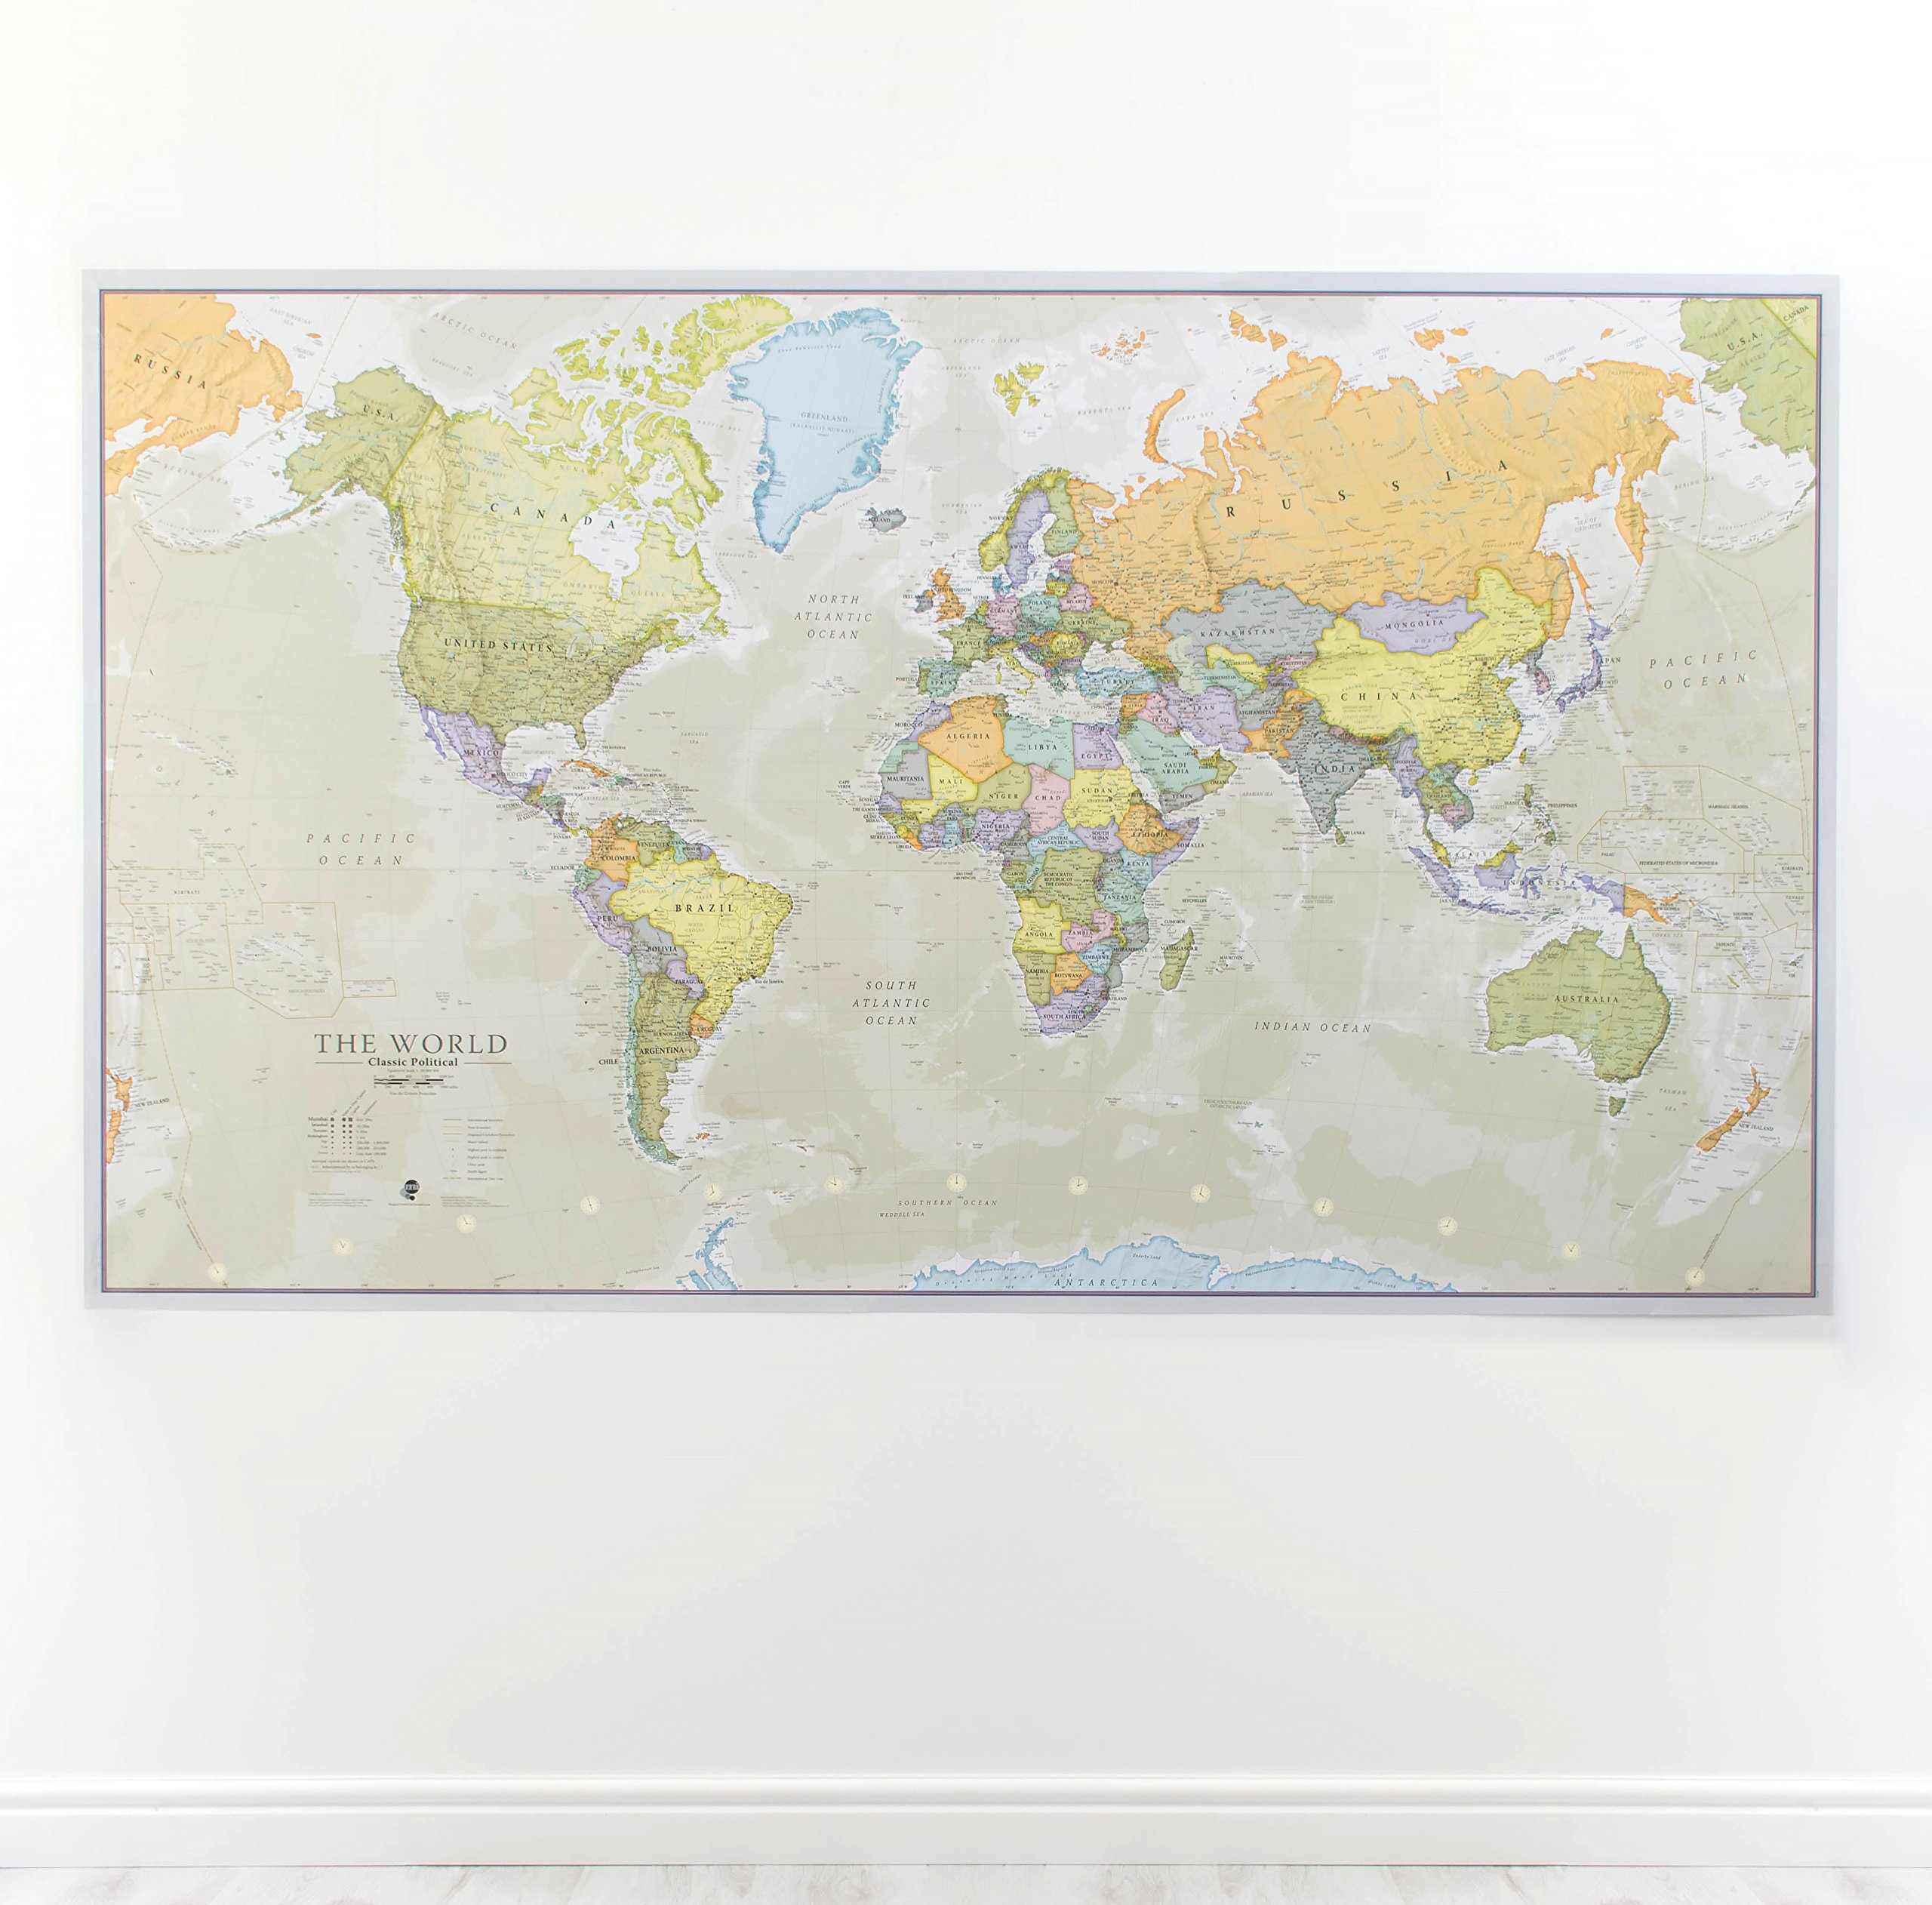 World maps amazon huge classic world map political poster laminatedencapsulated 197cm w x 1165 publicscrutiny Image collections